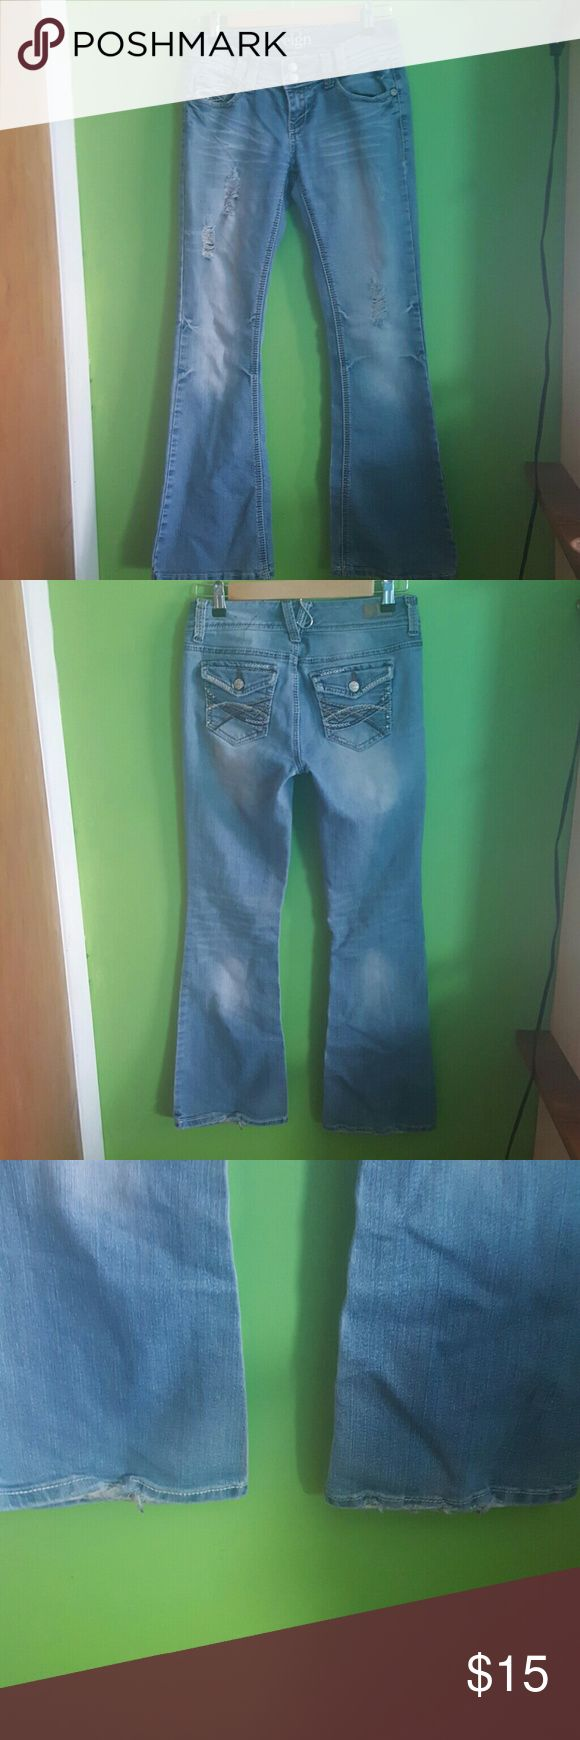 Reign jeans curvy fit Distressed light jeans. Curvy fit, great for every day. Some wear one heels (pictured), but overall good condition. BOGO! Buy One Get One Free! Details in my closet! Reign Jeans Flare & Wide Leg